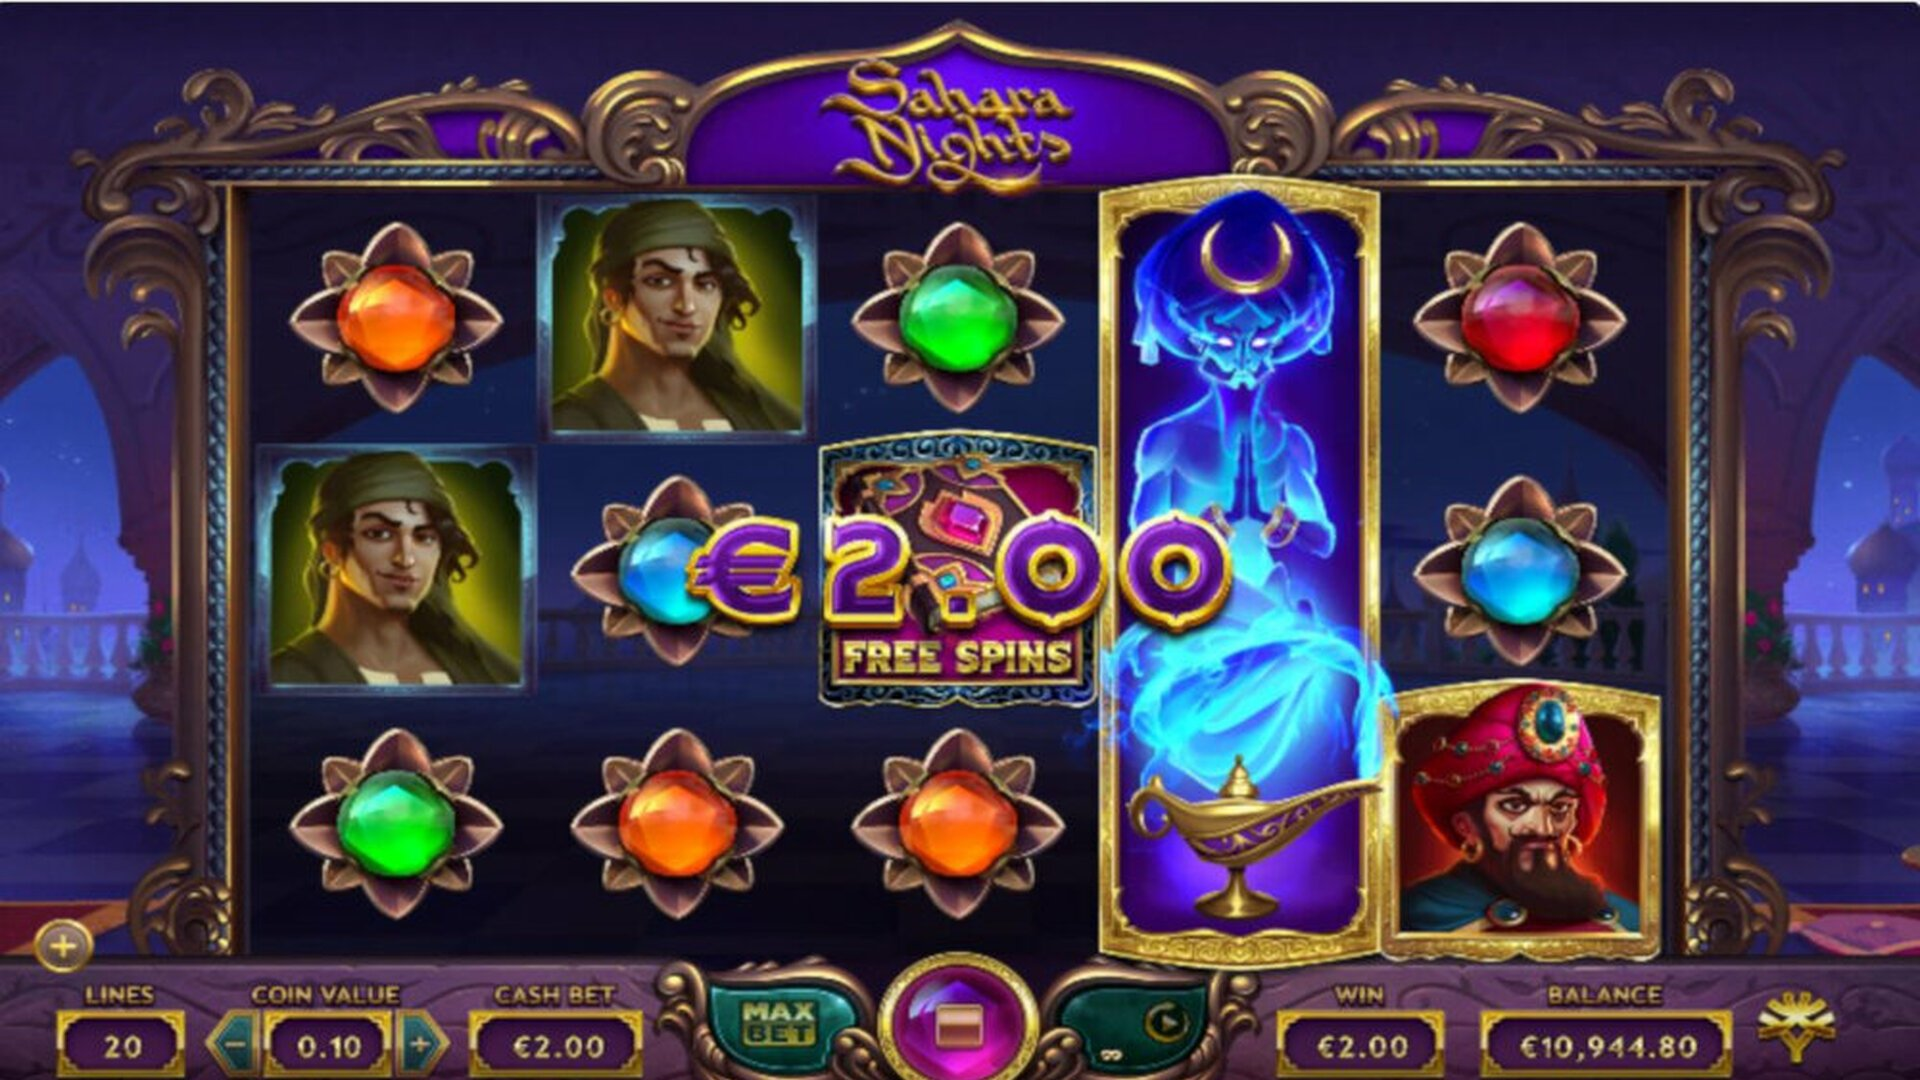 50 free spins on sign up